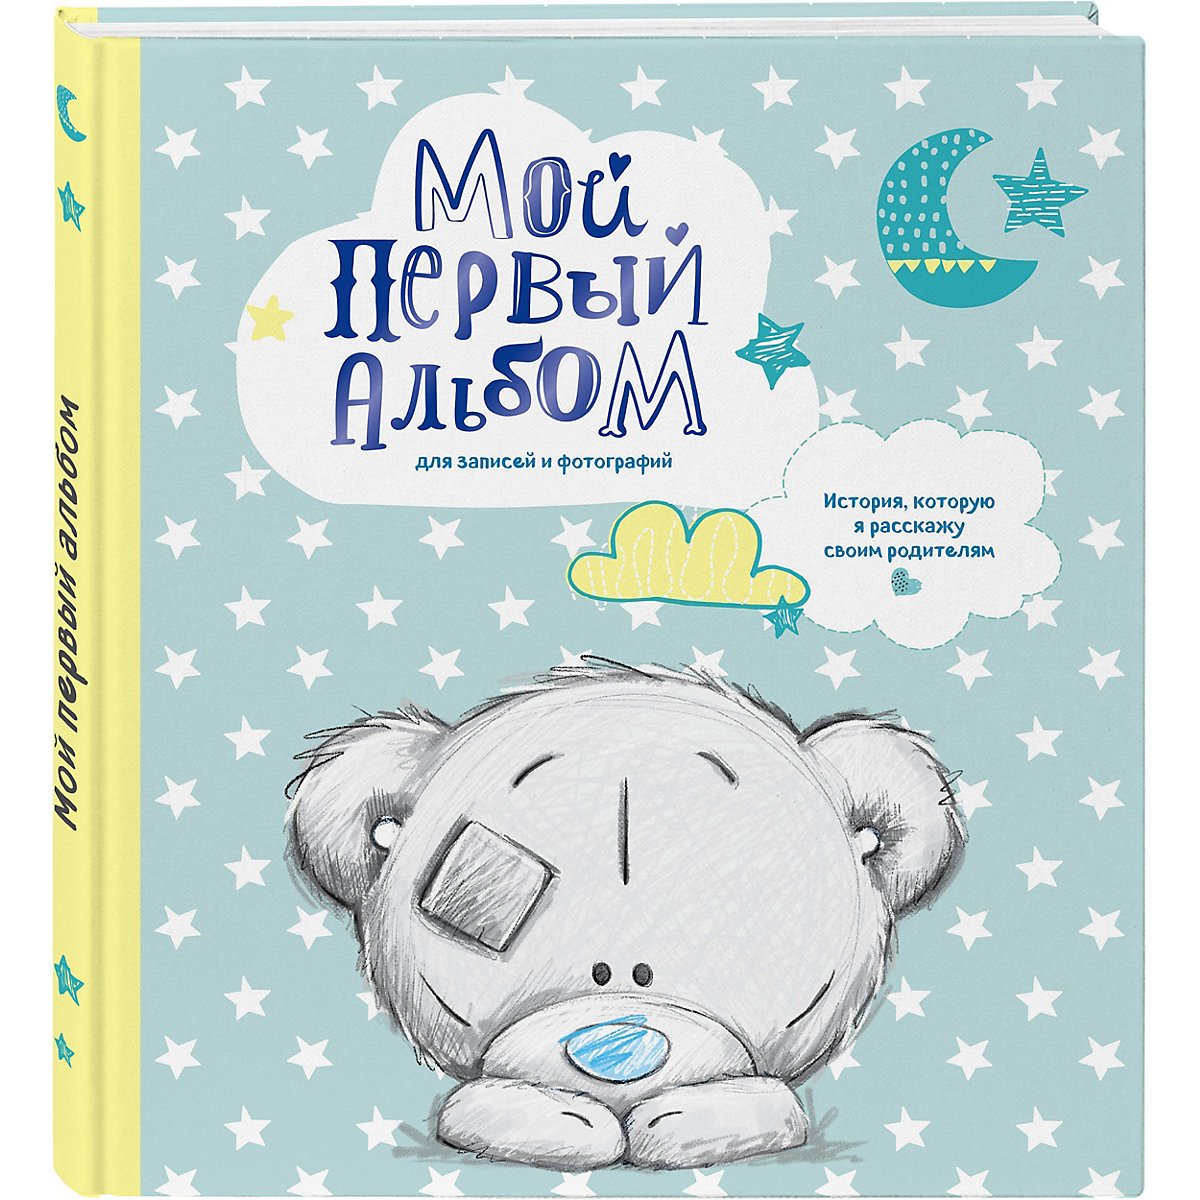 Books EKSMO 9556205 Children Education Encyclopedia Alphabet Dictionary Book For Baby MTpromo